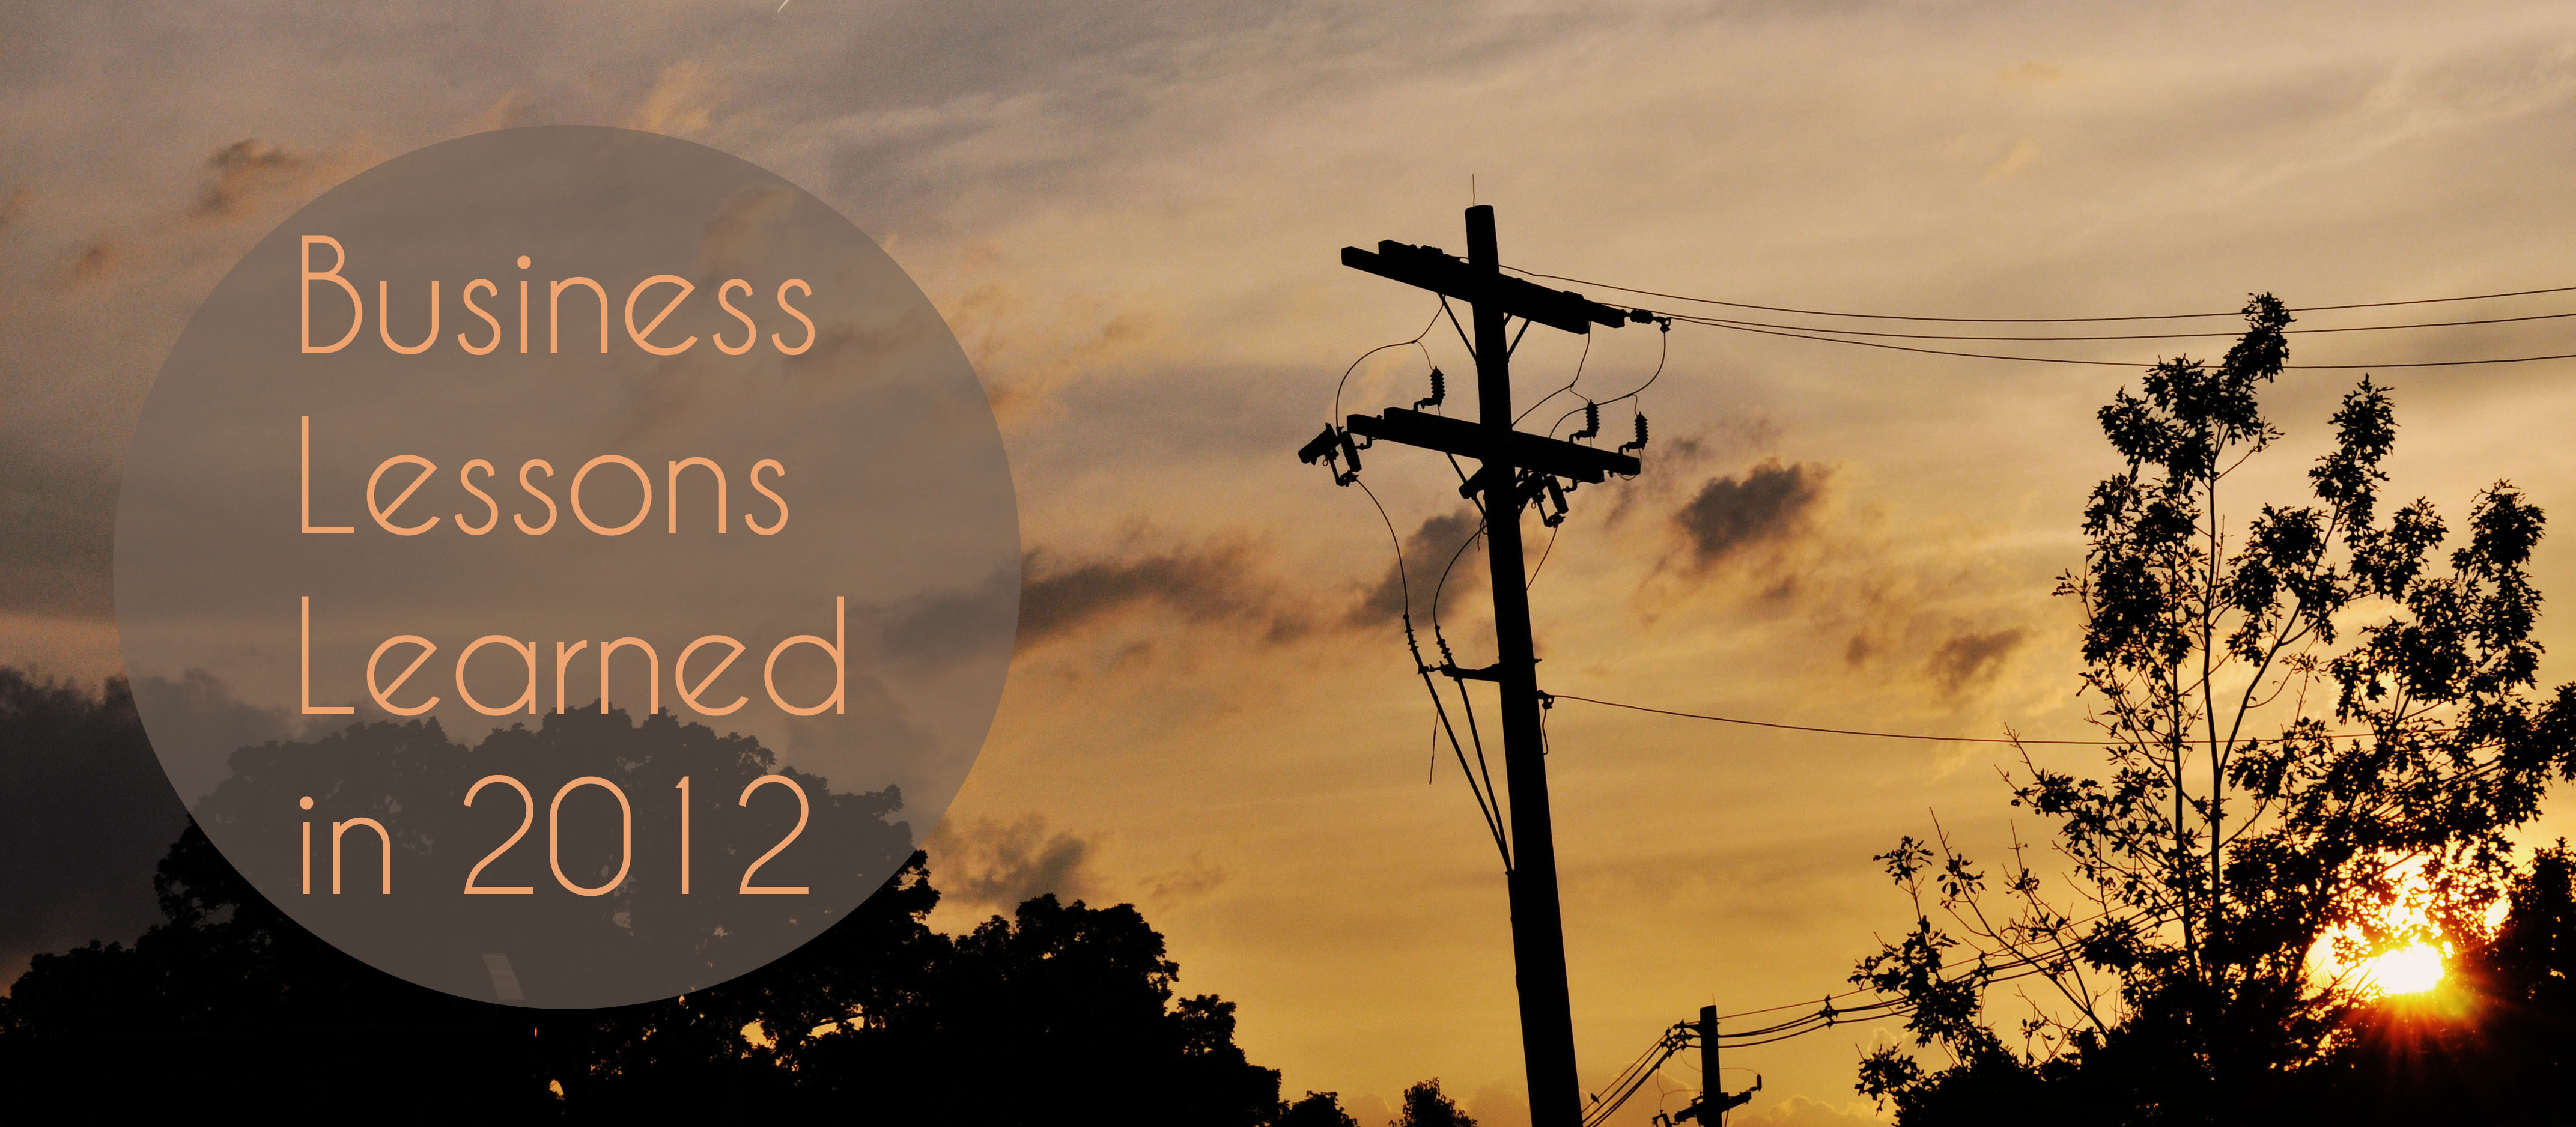 business lessons learned in 2012